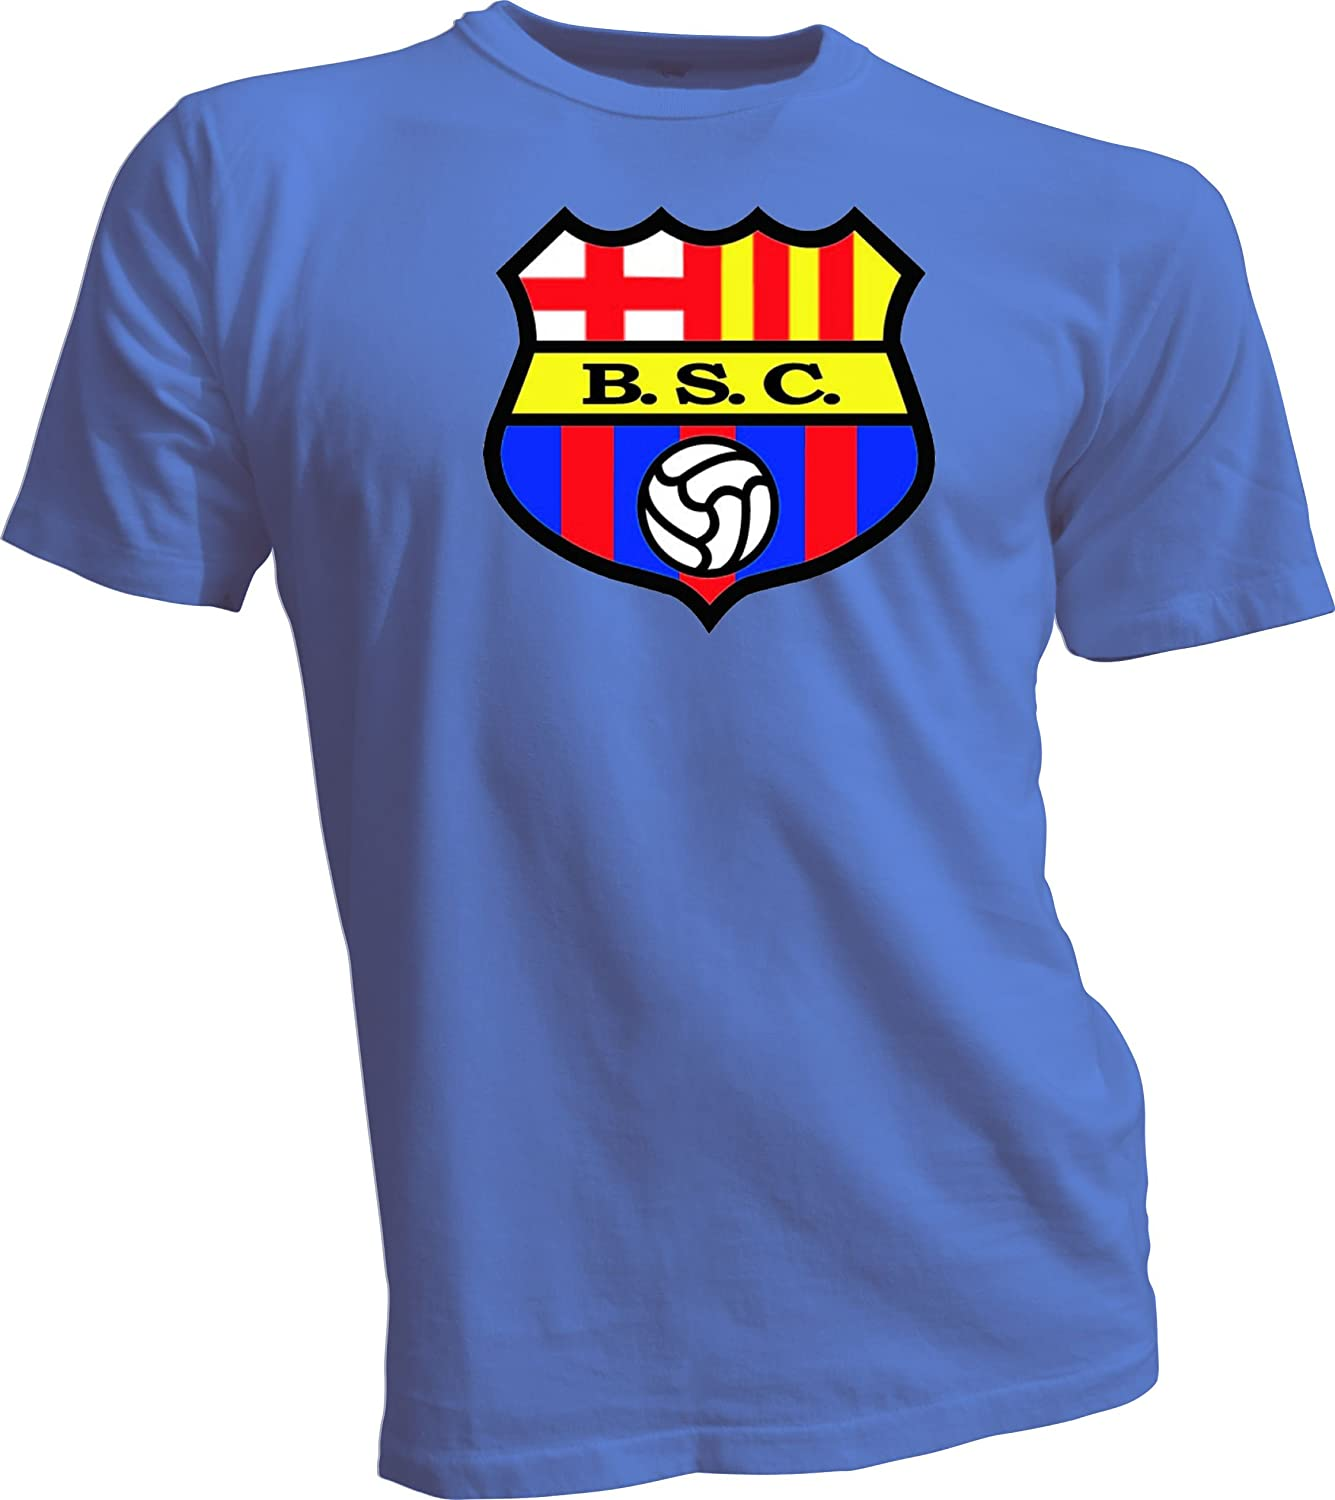 Amazon Com Gildan Barcelona Sporting Club Guayaquil Ecuador Futbol Soccer T Shirt Medium Blue Clothing